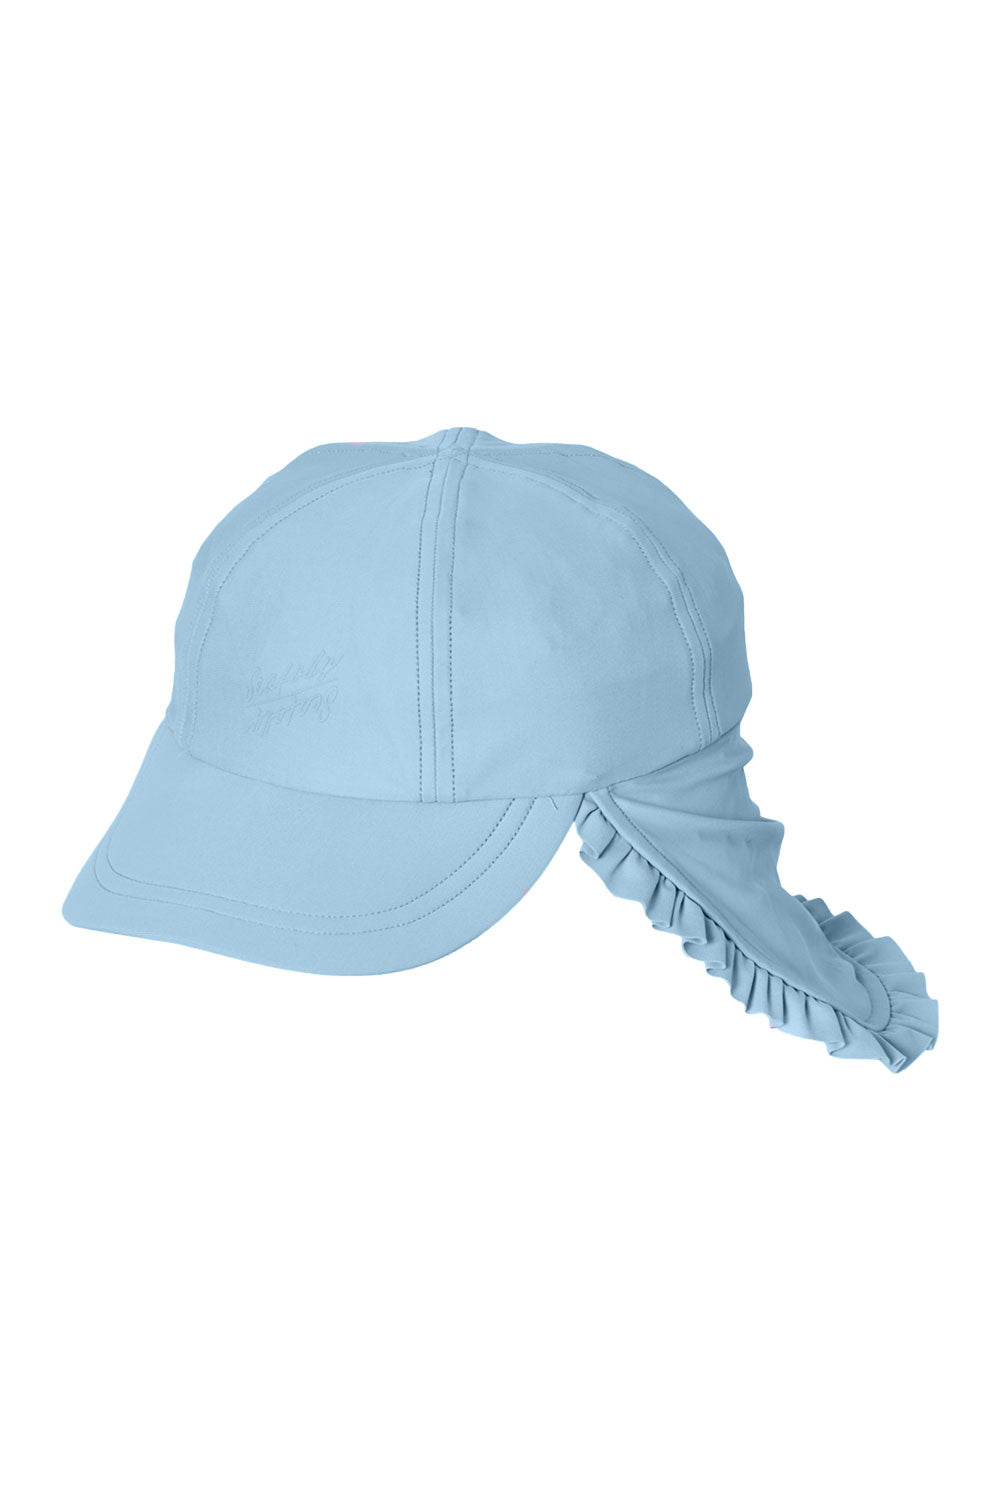 Seafolly Kids Beach Flyer Hat - Cornflower Blue